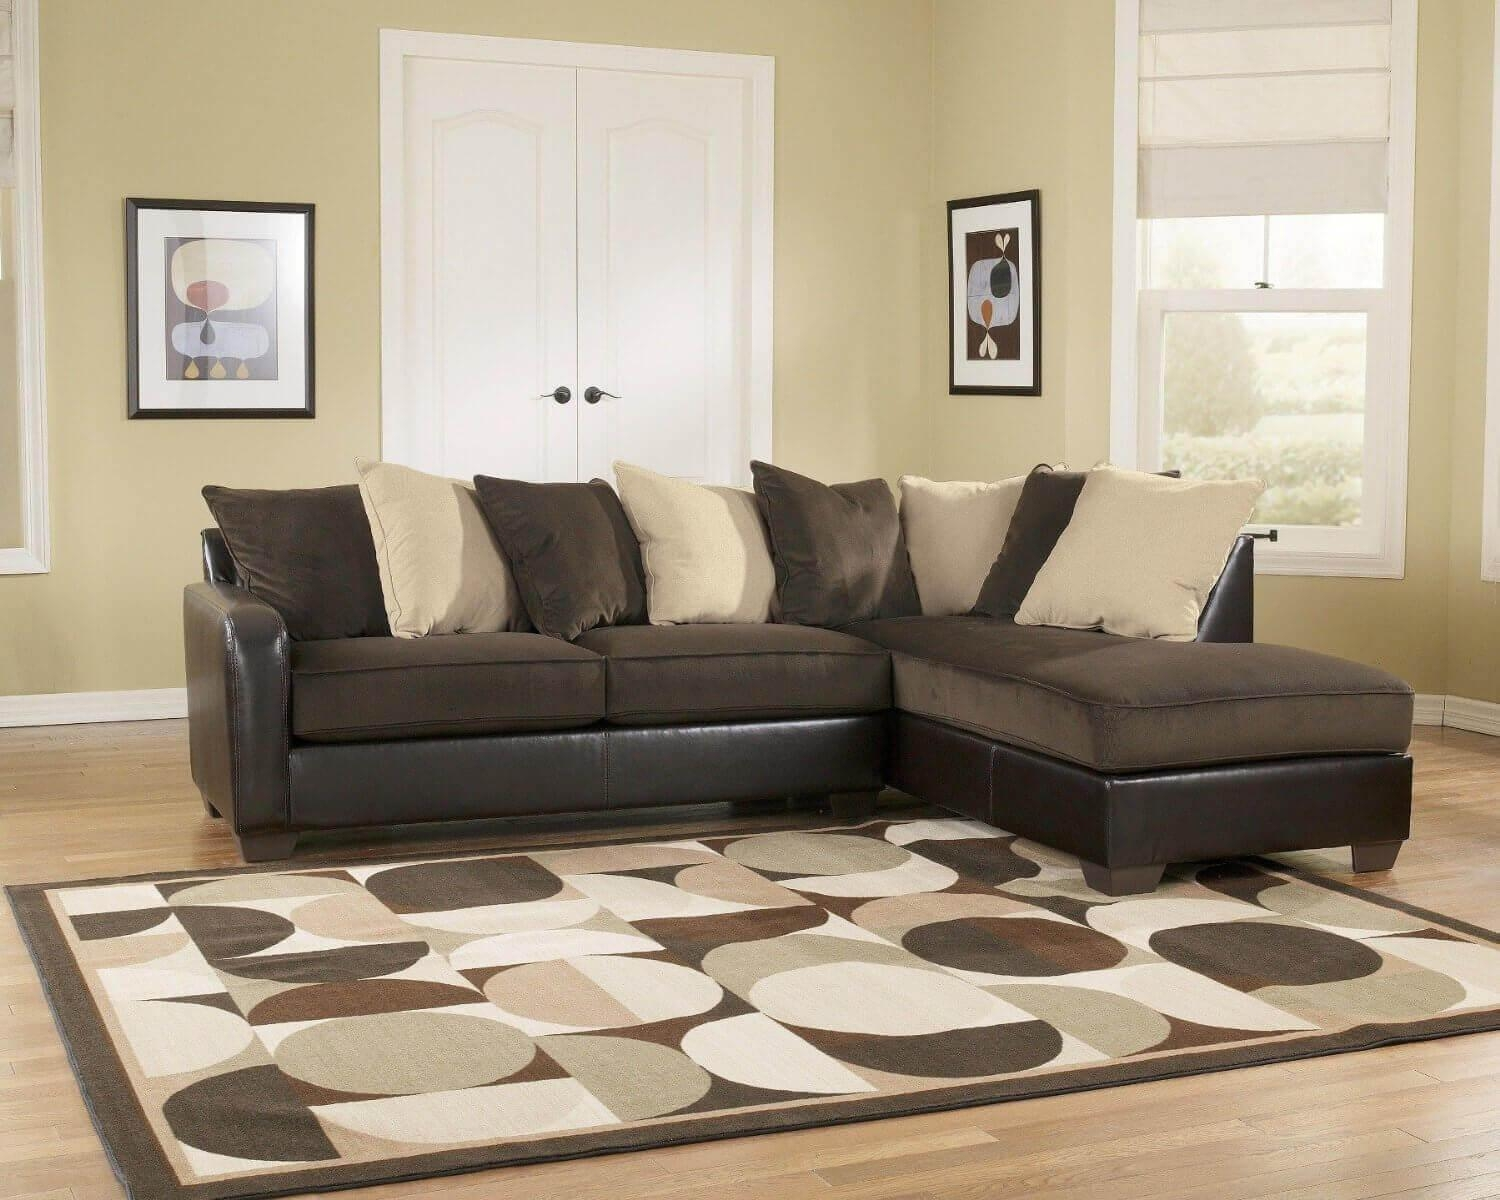 Furniture: Contemporary Sectional Sofas | Sectional Leather Sofa Inside Leather Sofa Sectionals For Sale (Image 4 of 20)